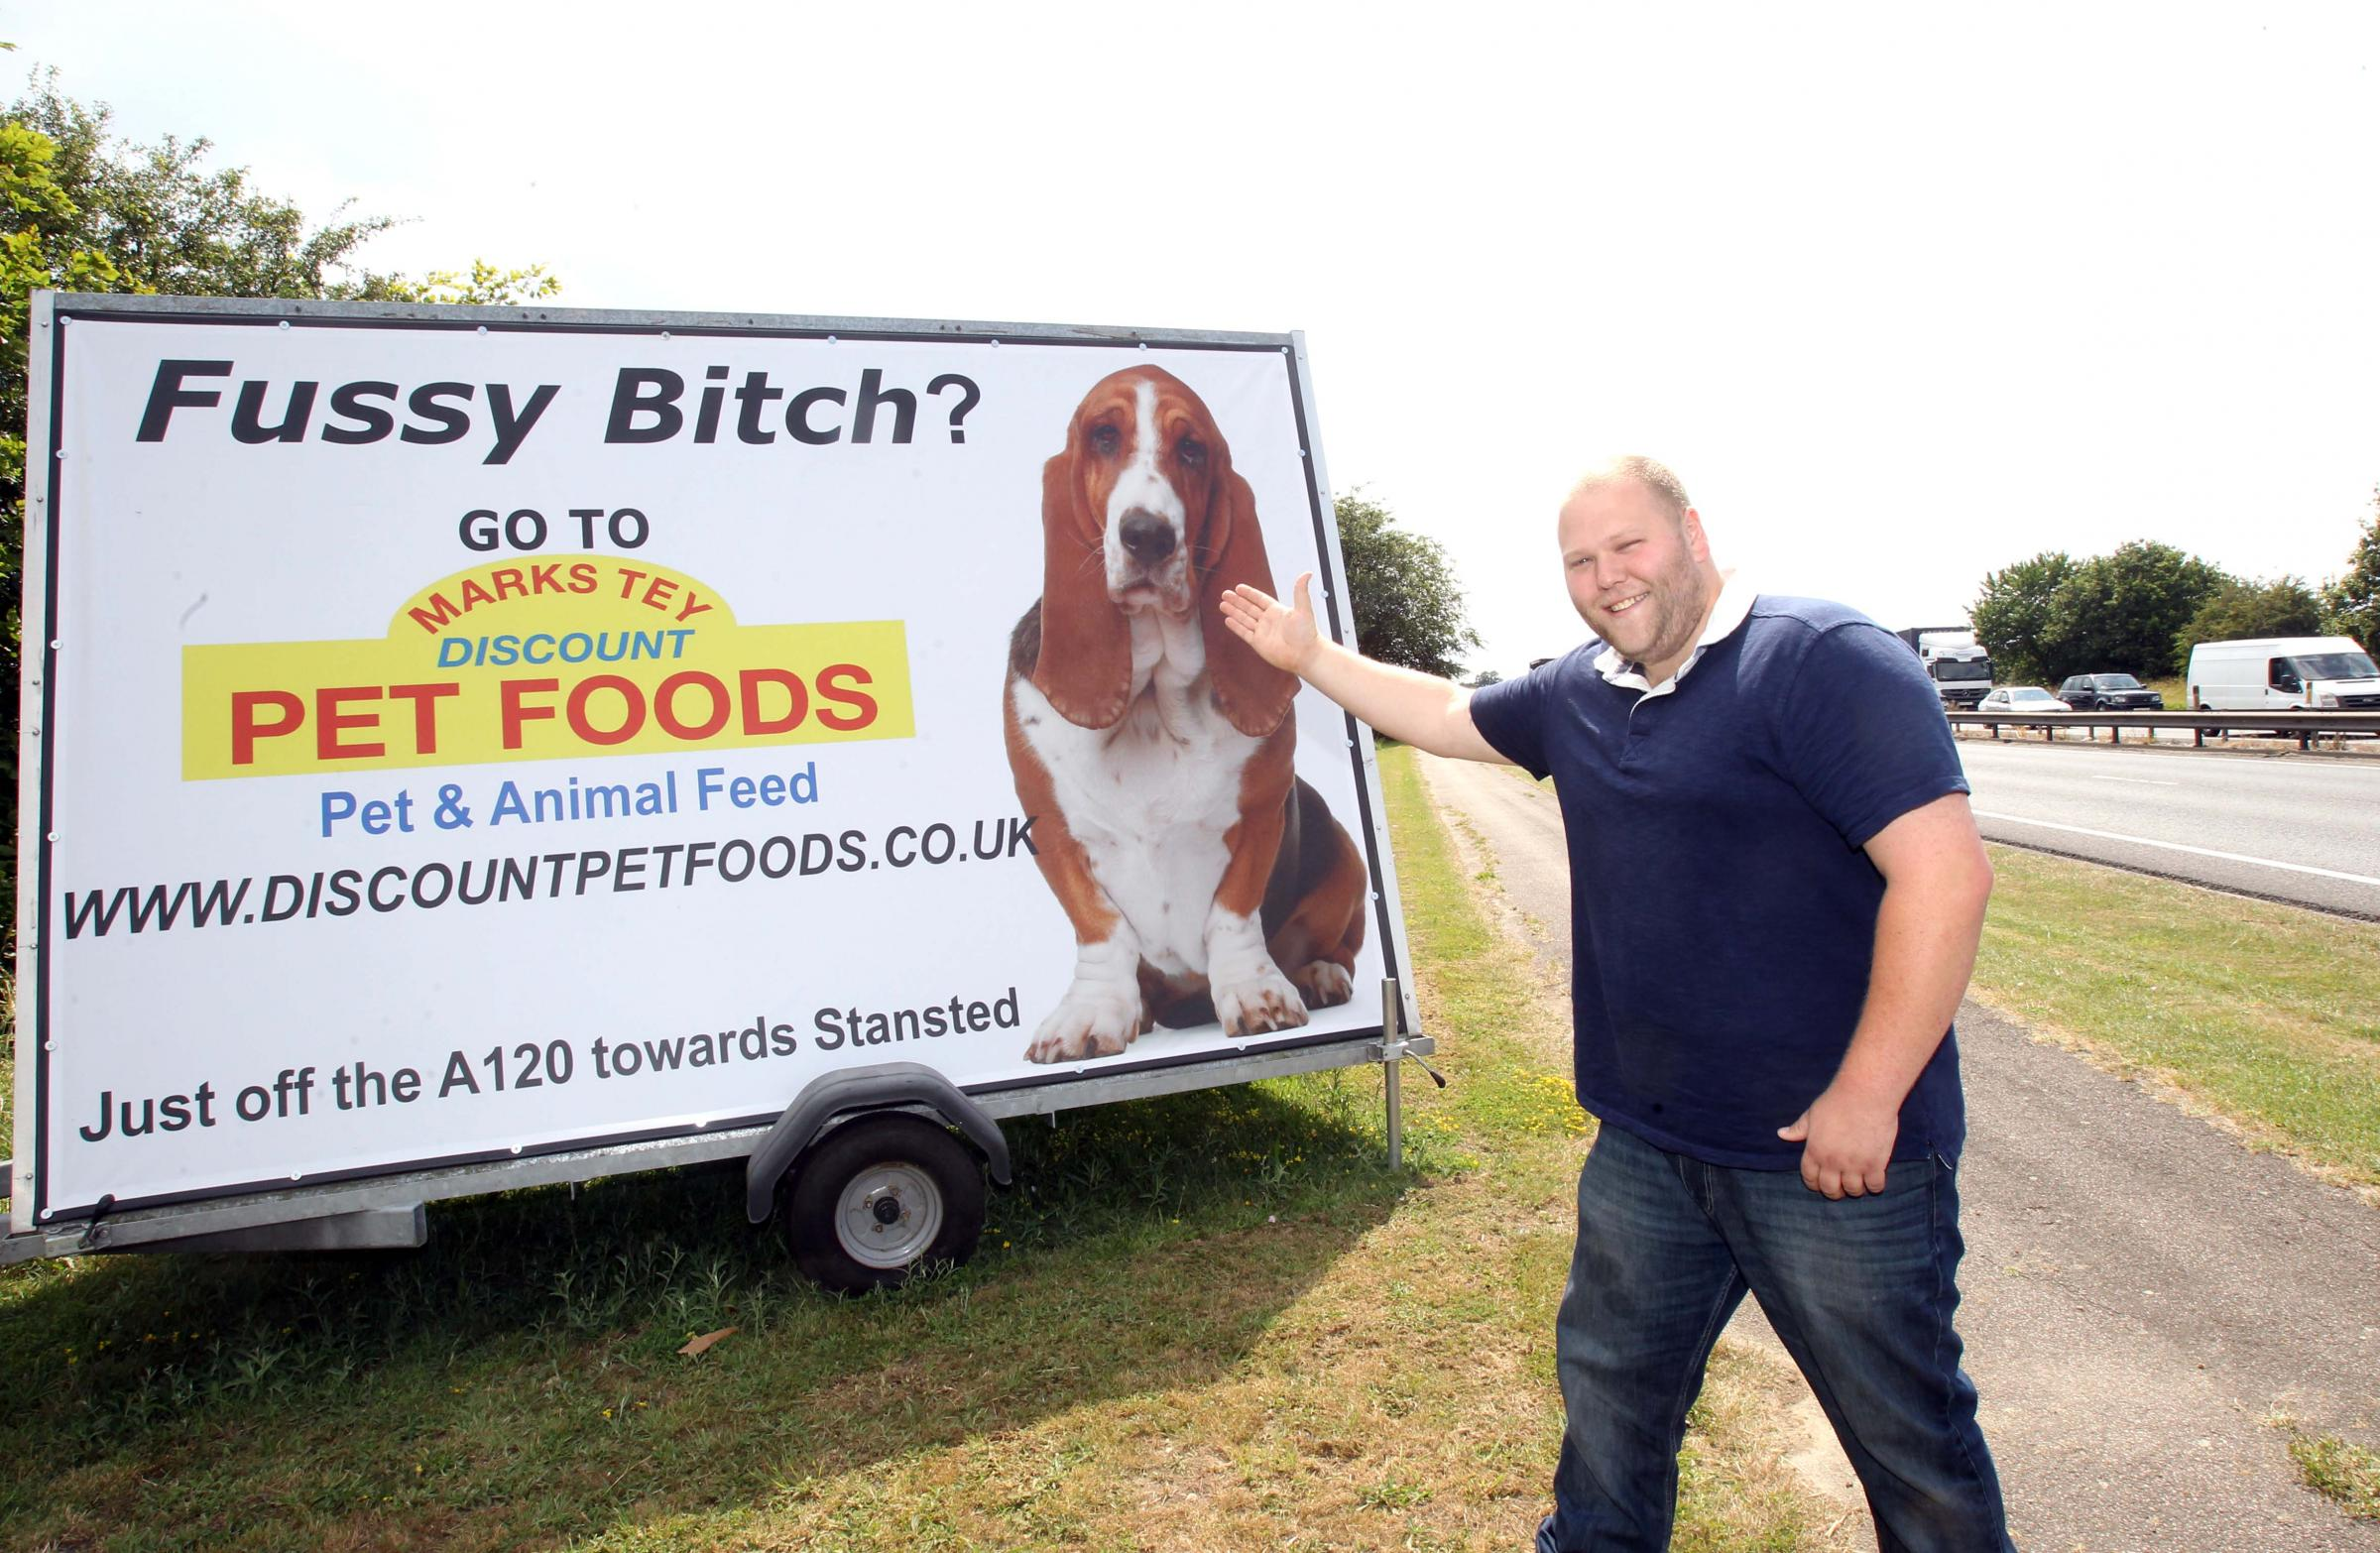 Fussy bitch billboard a hit with owners